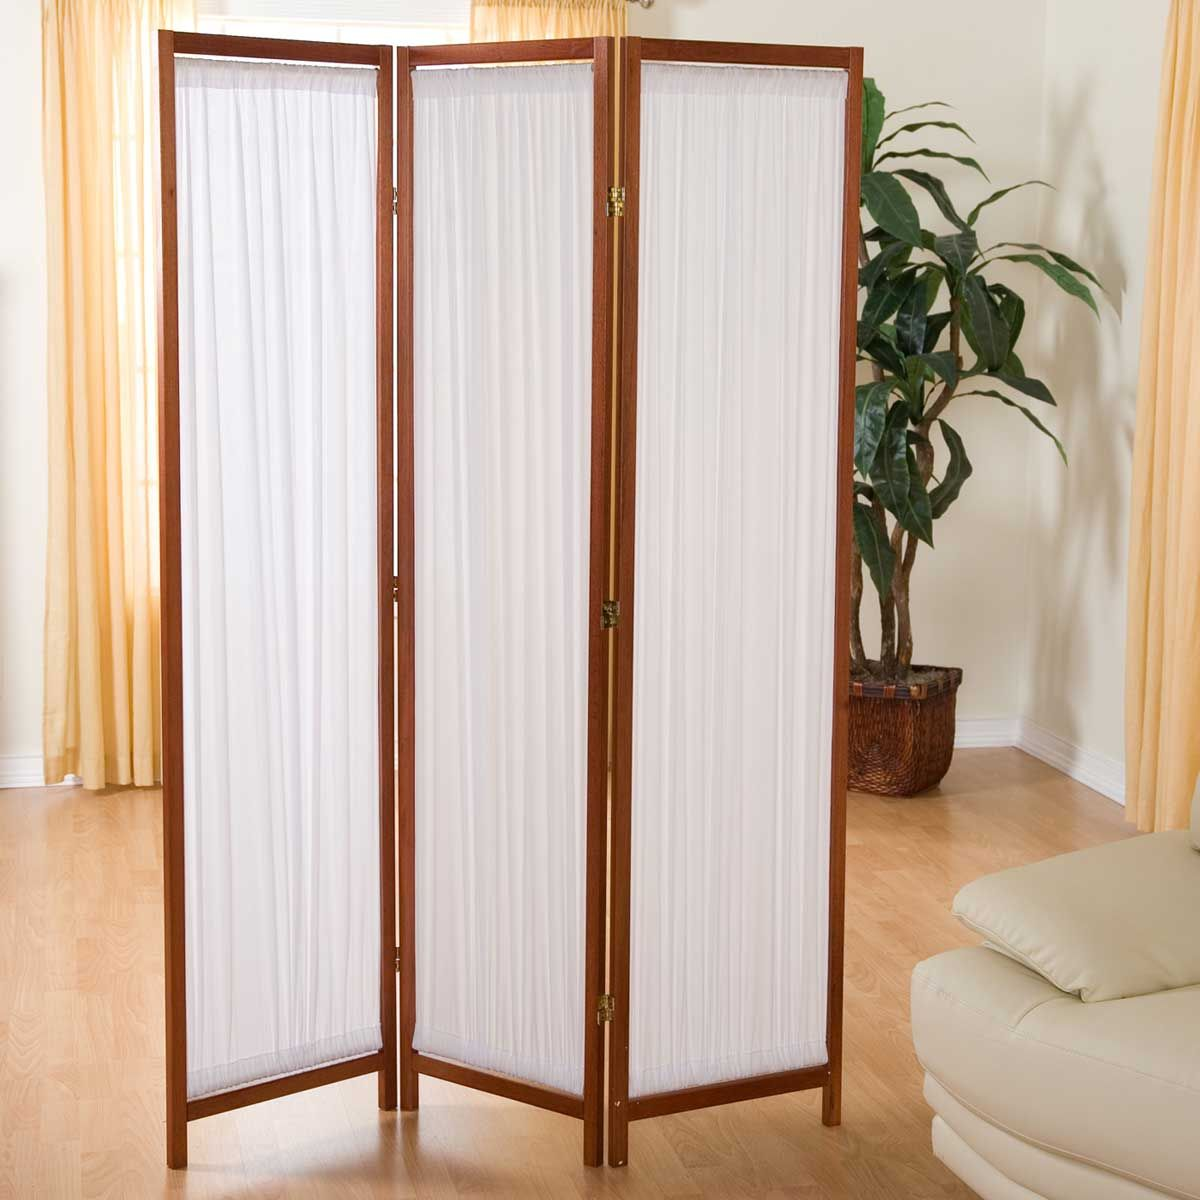 Room Divider Foldable Simple Wood Decorative Room Divider Furniture Piece